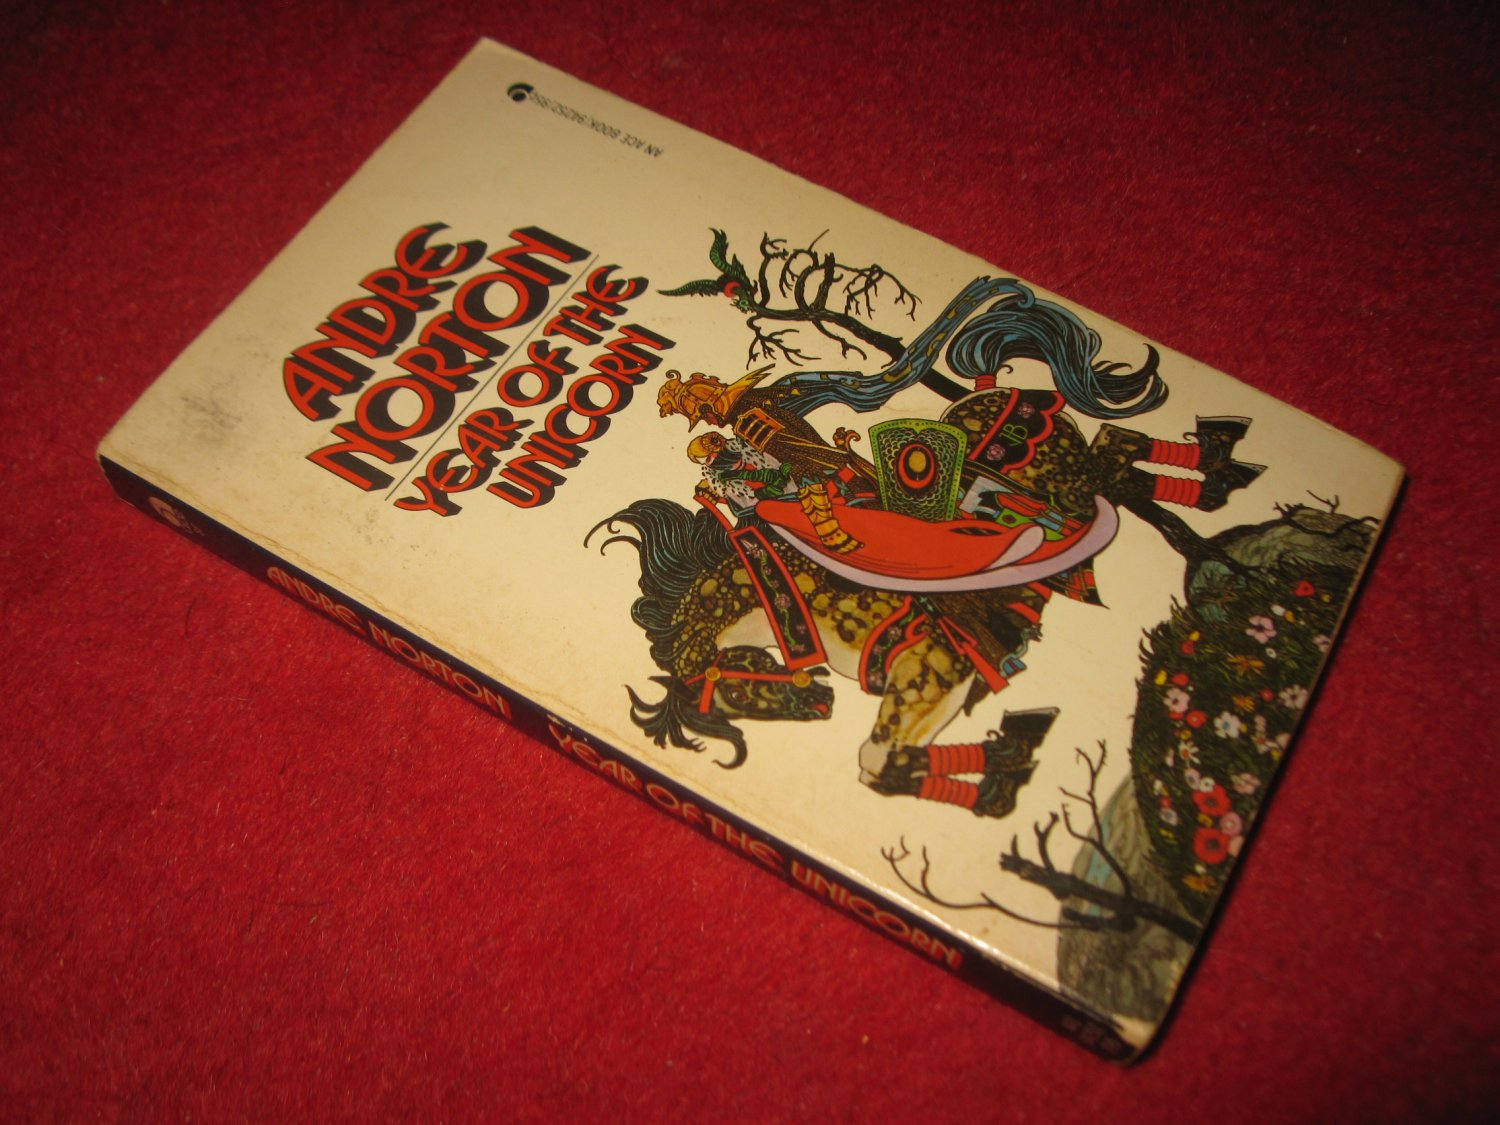 1965 Year of the Unicorn - by Andre Norton - Ace books - paperback